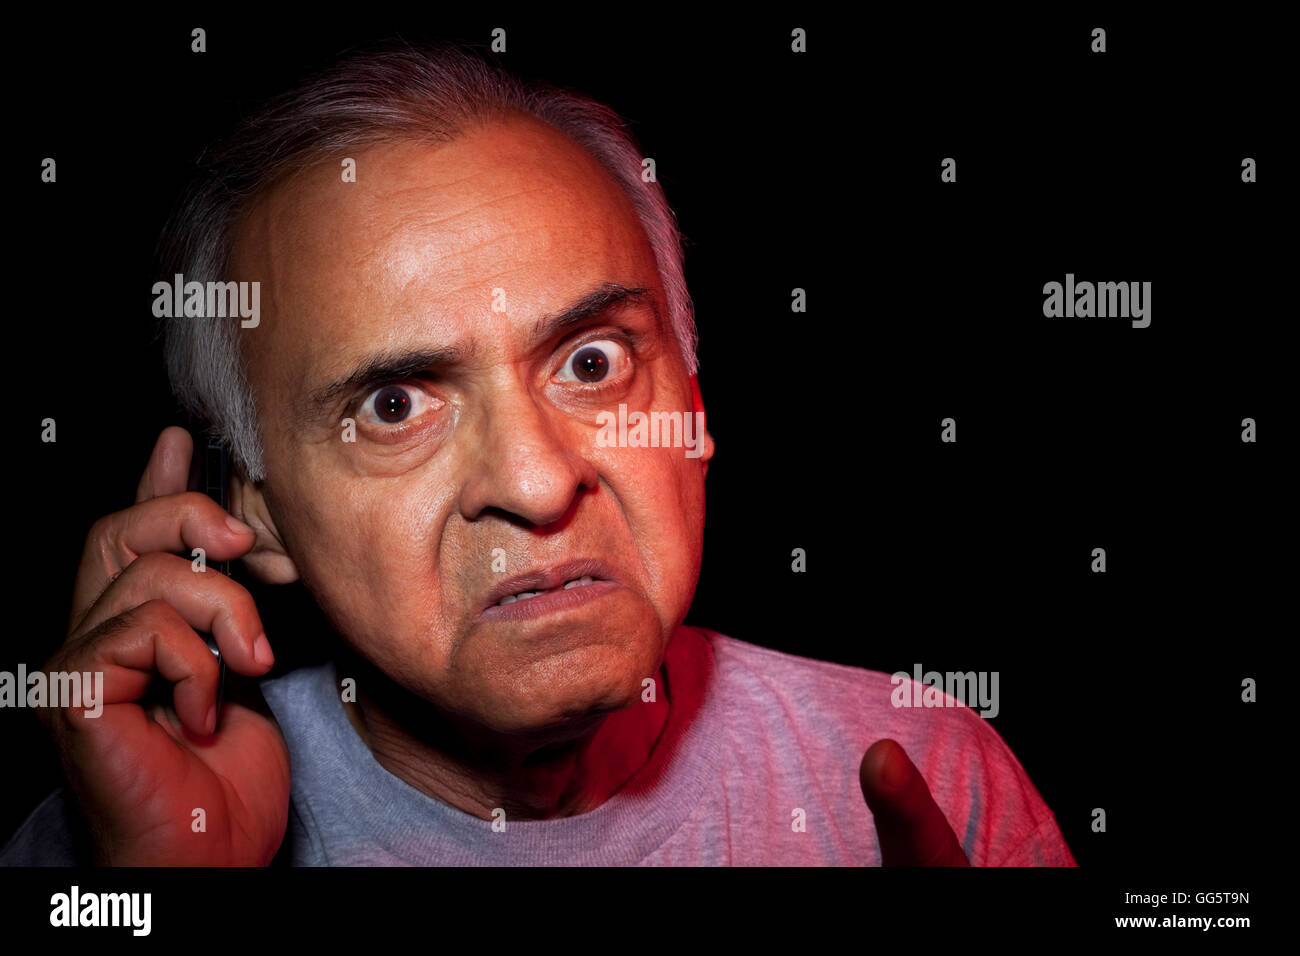 Close Up Of And Angry Old Man Talking On Mobile Phone Stock Photo